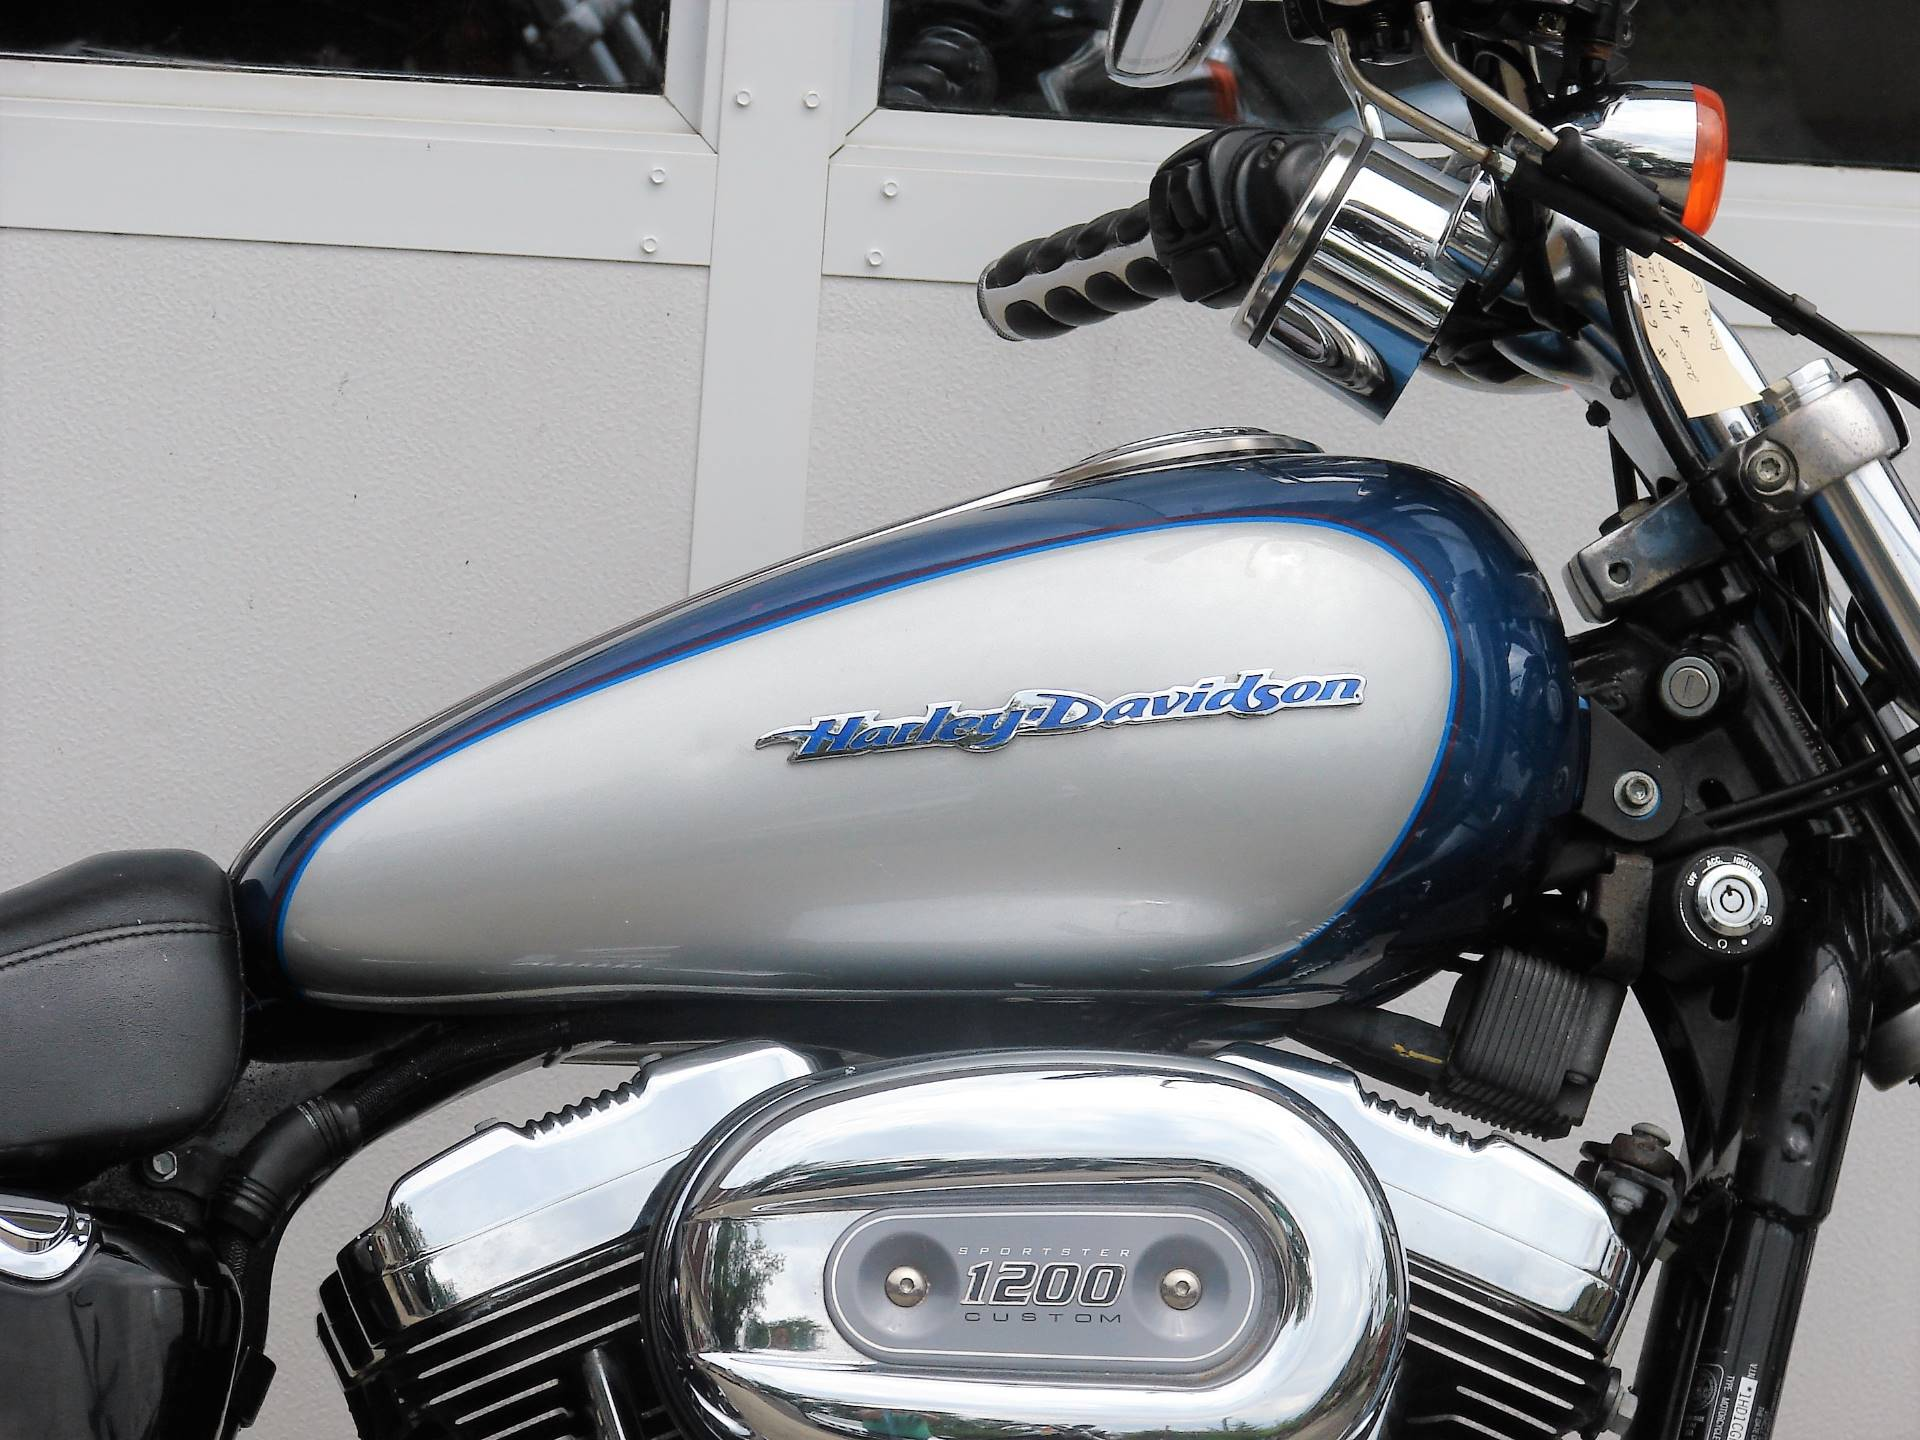 2005 Harley-Davidson Sportster® XL 1200 Custom in Williamstown, New Jersey - Photo 3